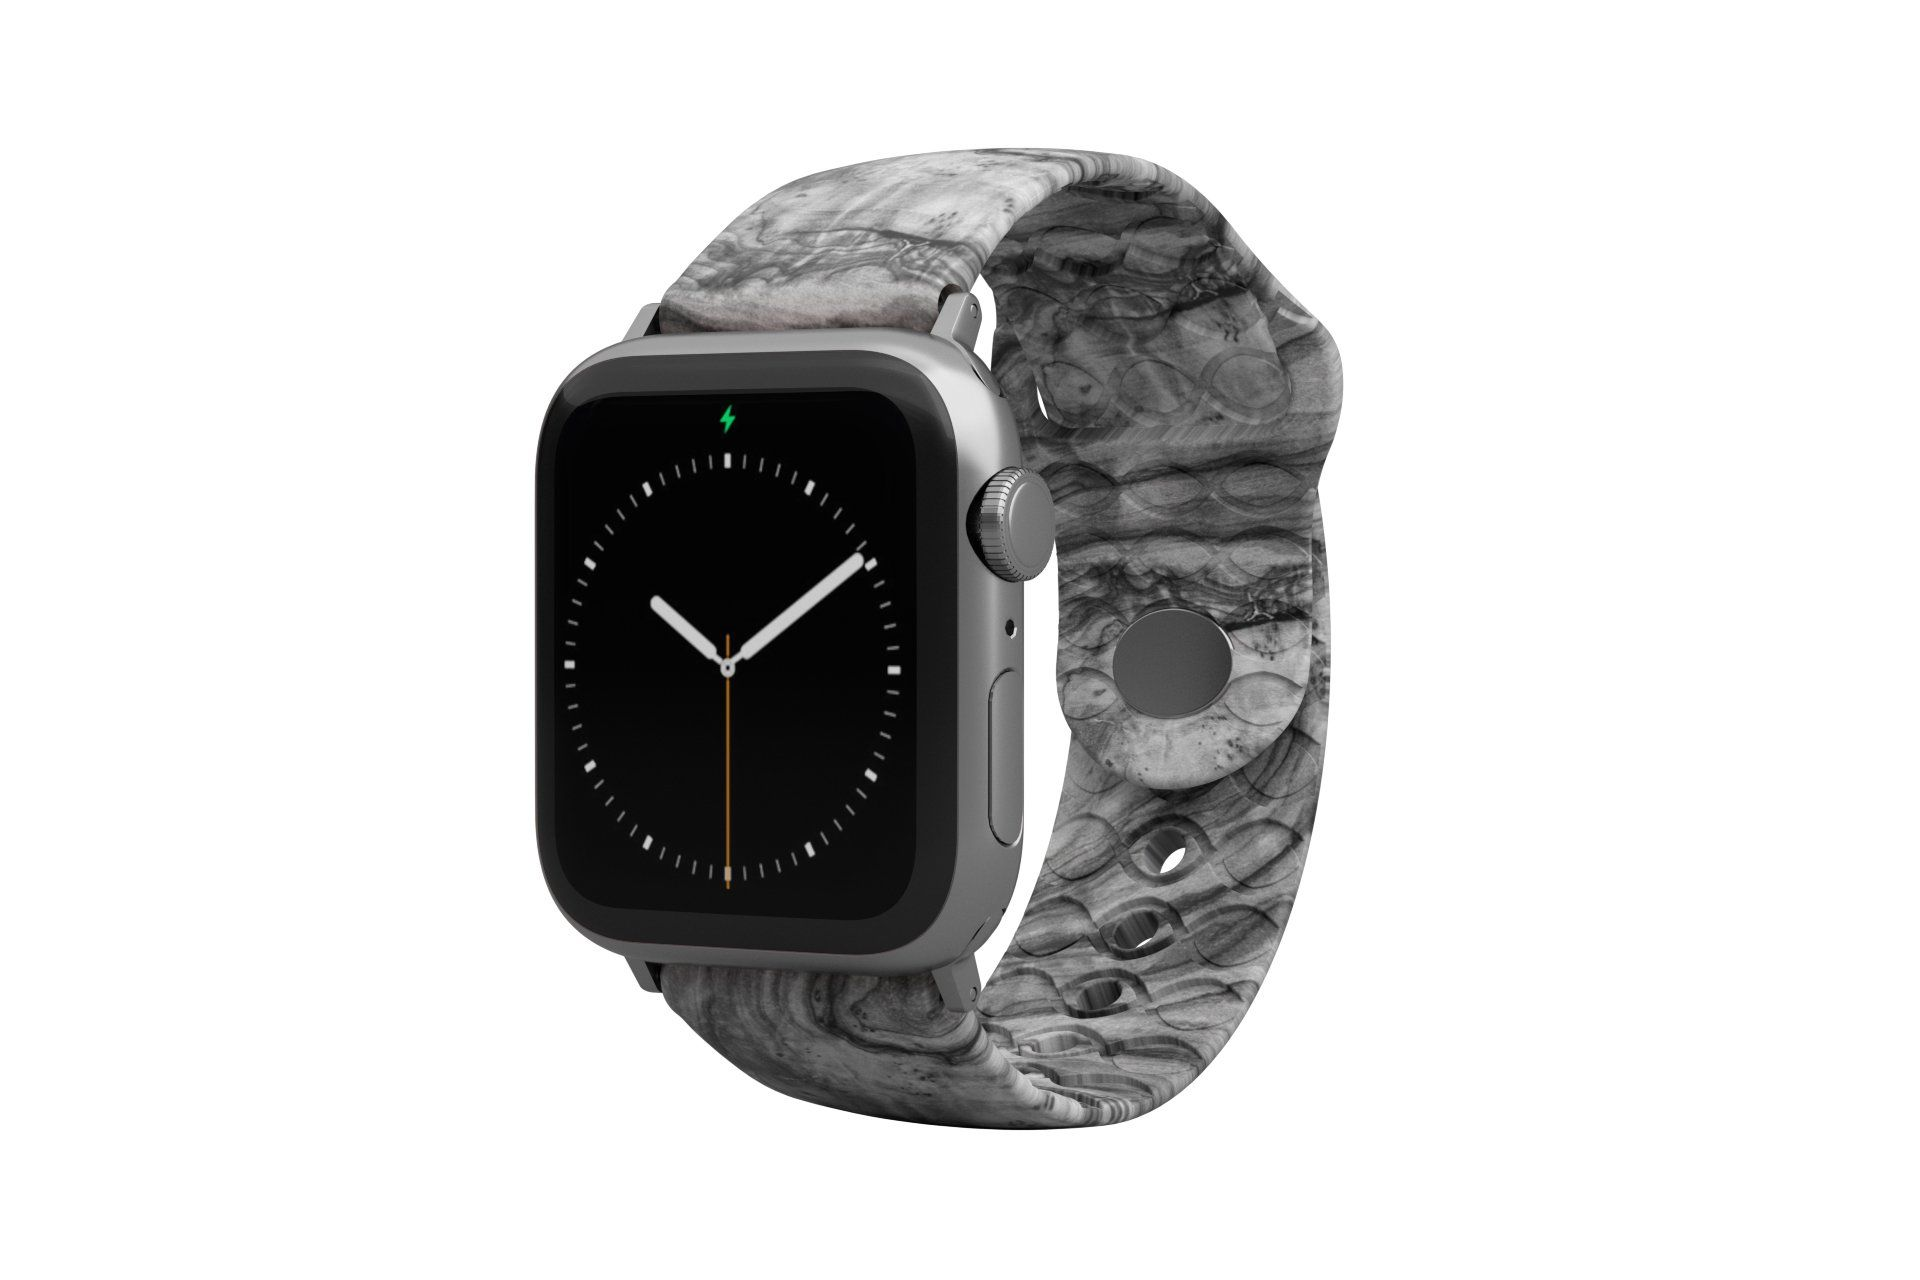 Apple Watch Band Nomad Relic Apple watch bands, Watch